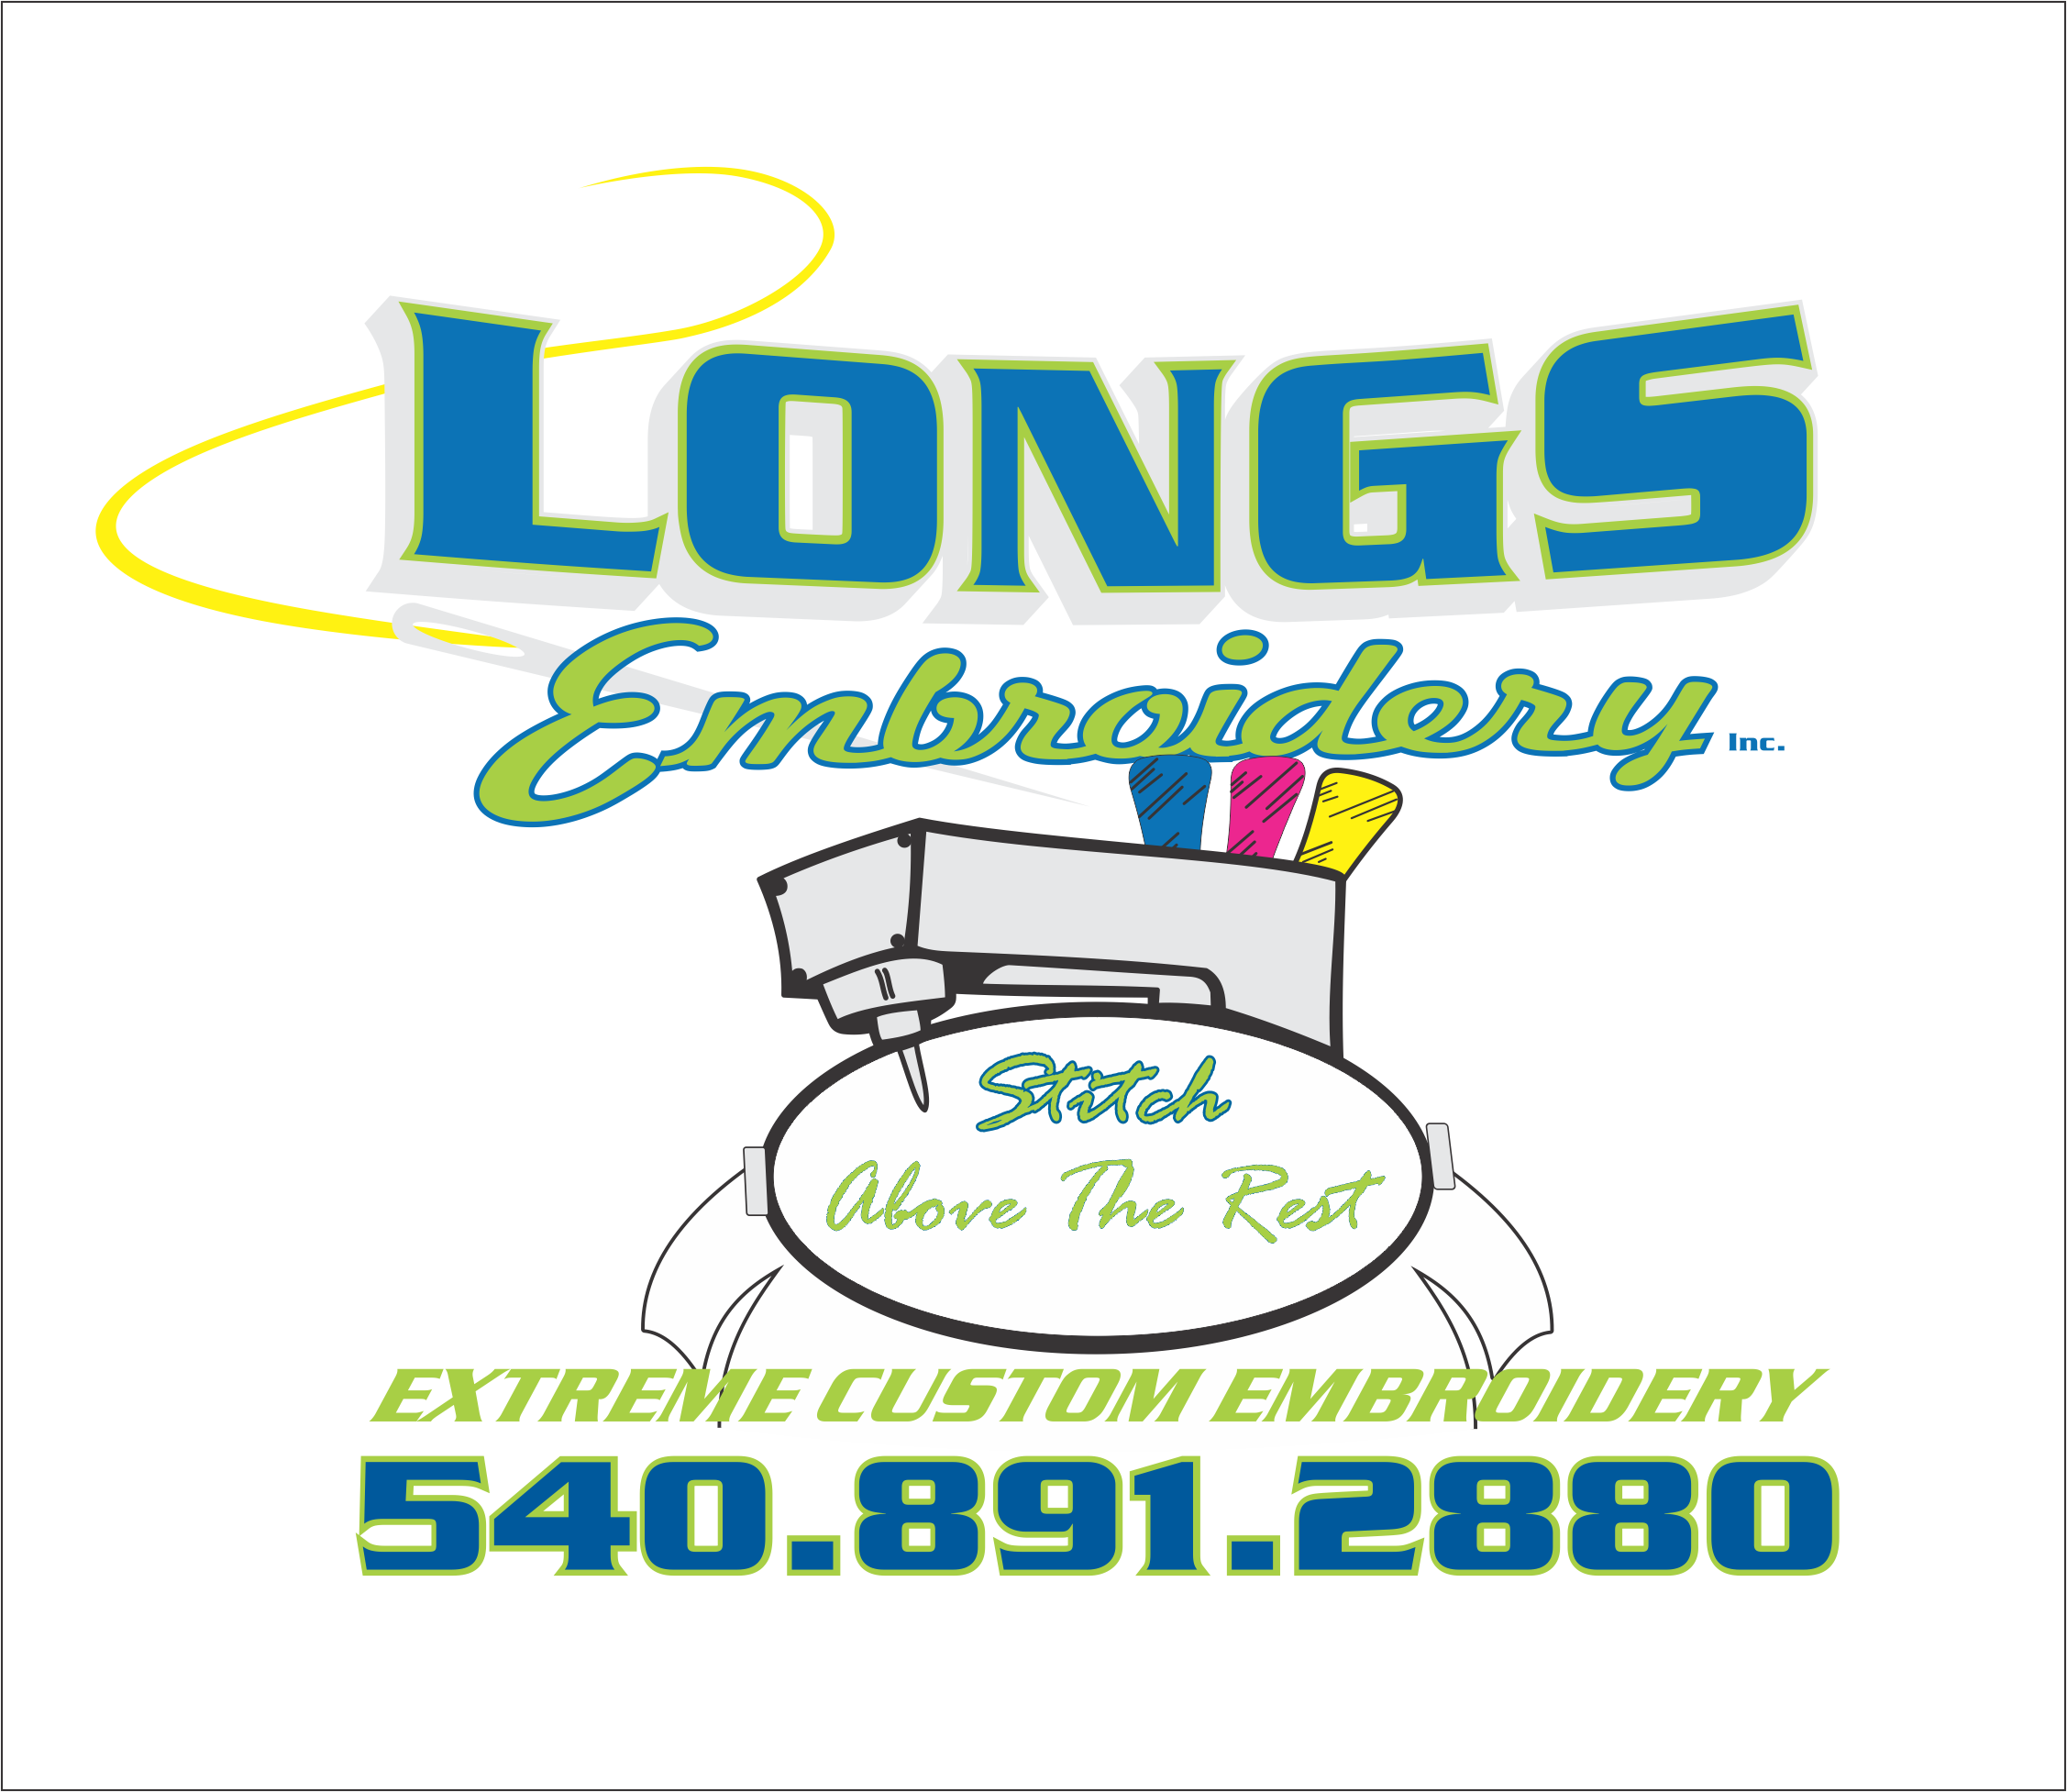 Longs Embroidery, Inc.